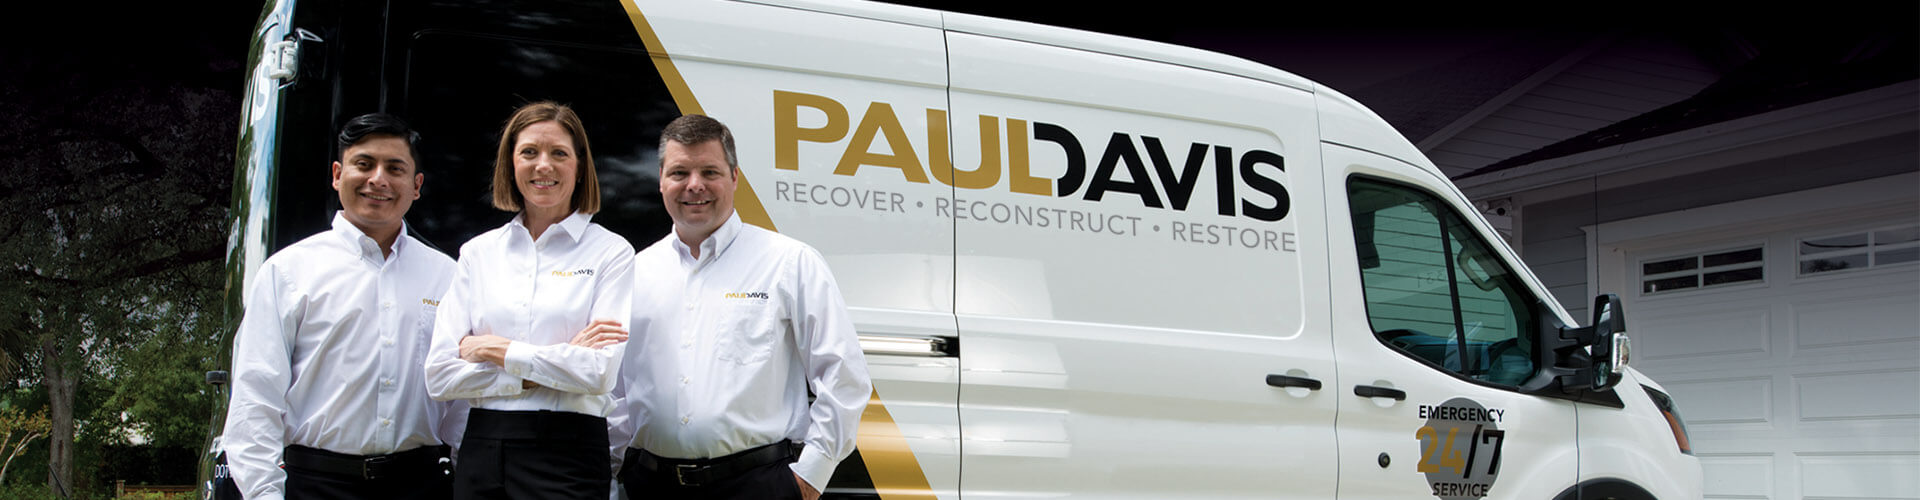 Paul Davis Restoration Specialists